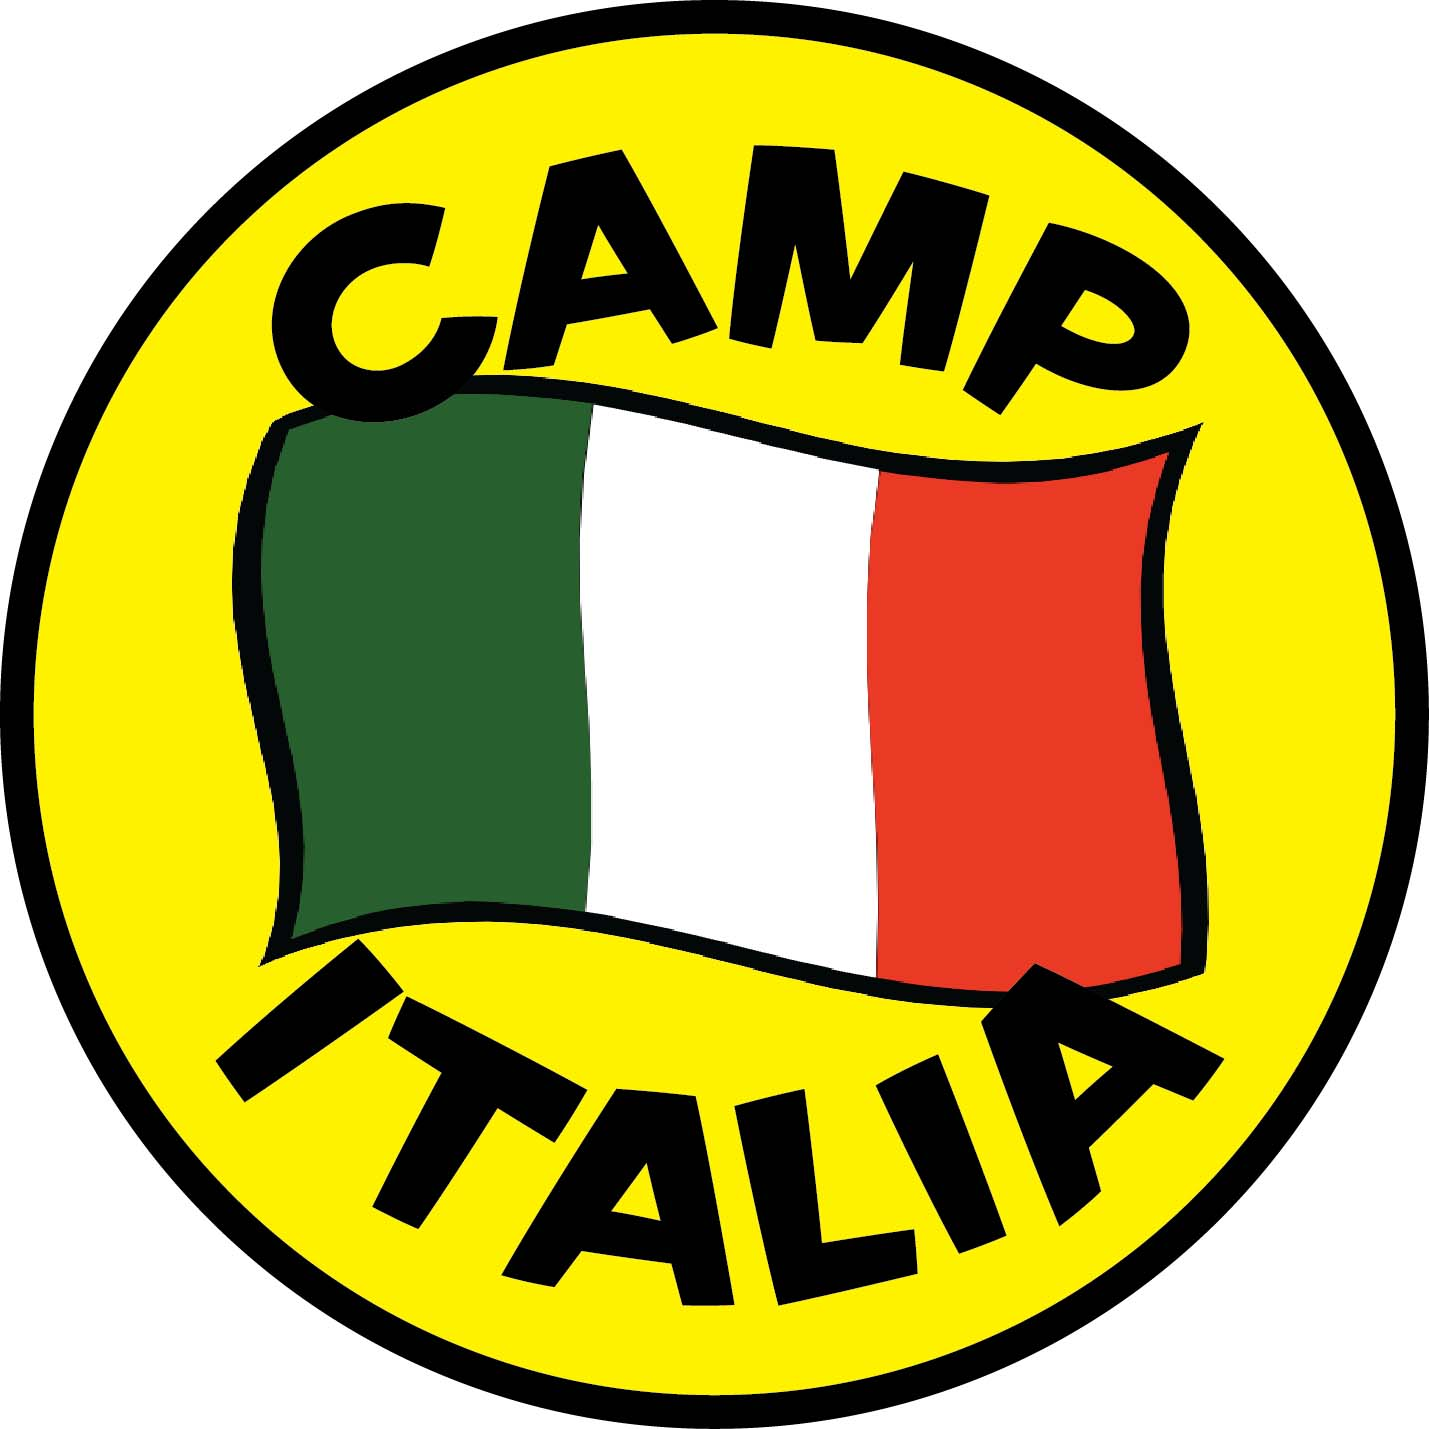 Camp Italia USA teaches kids Italian culture in Long Island